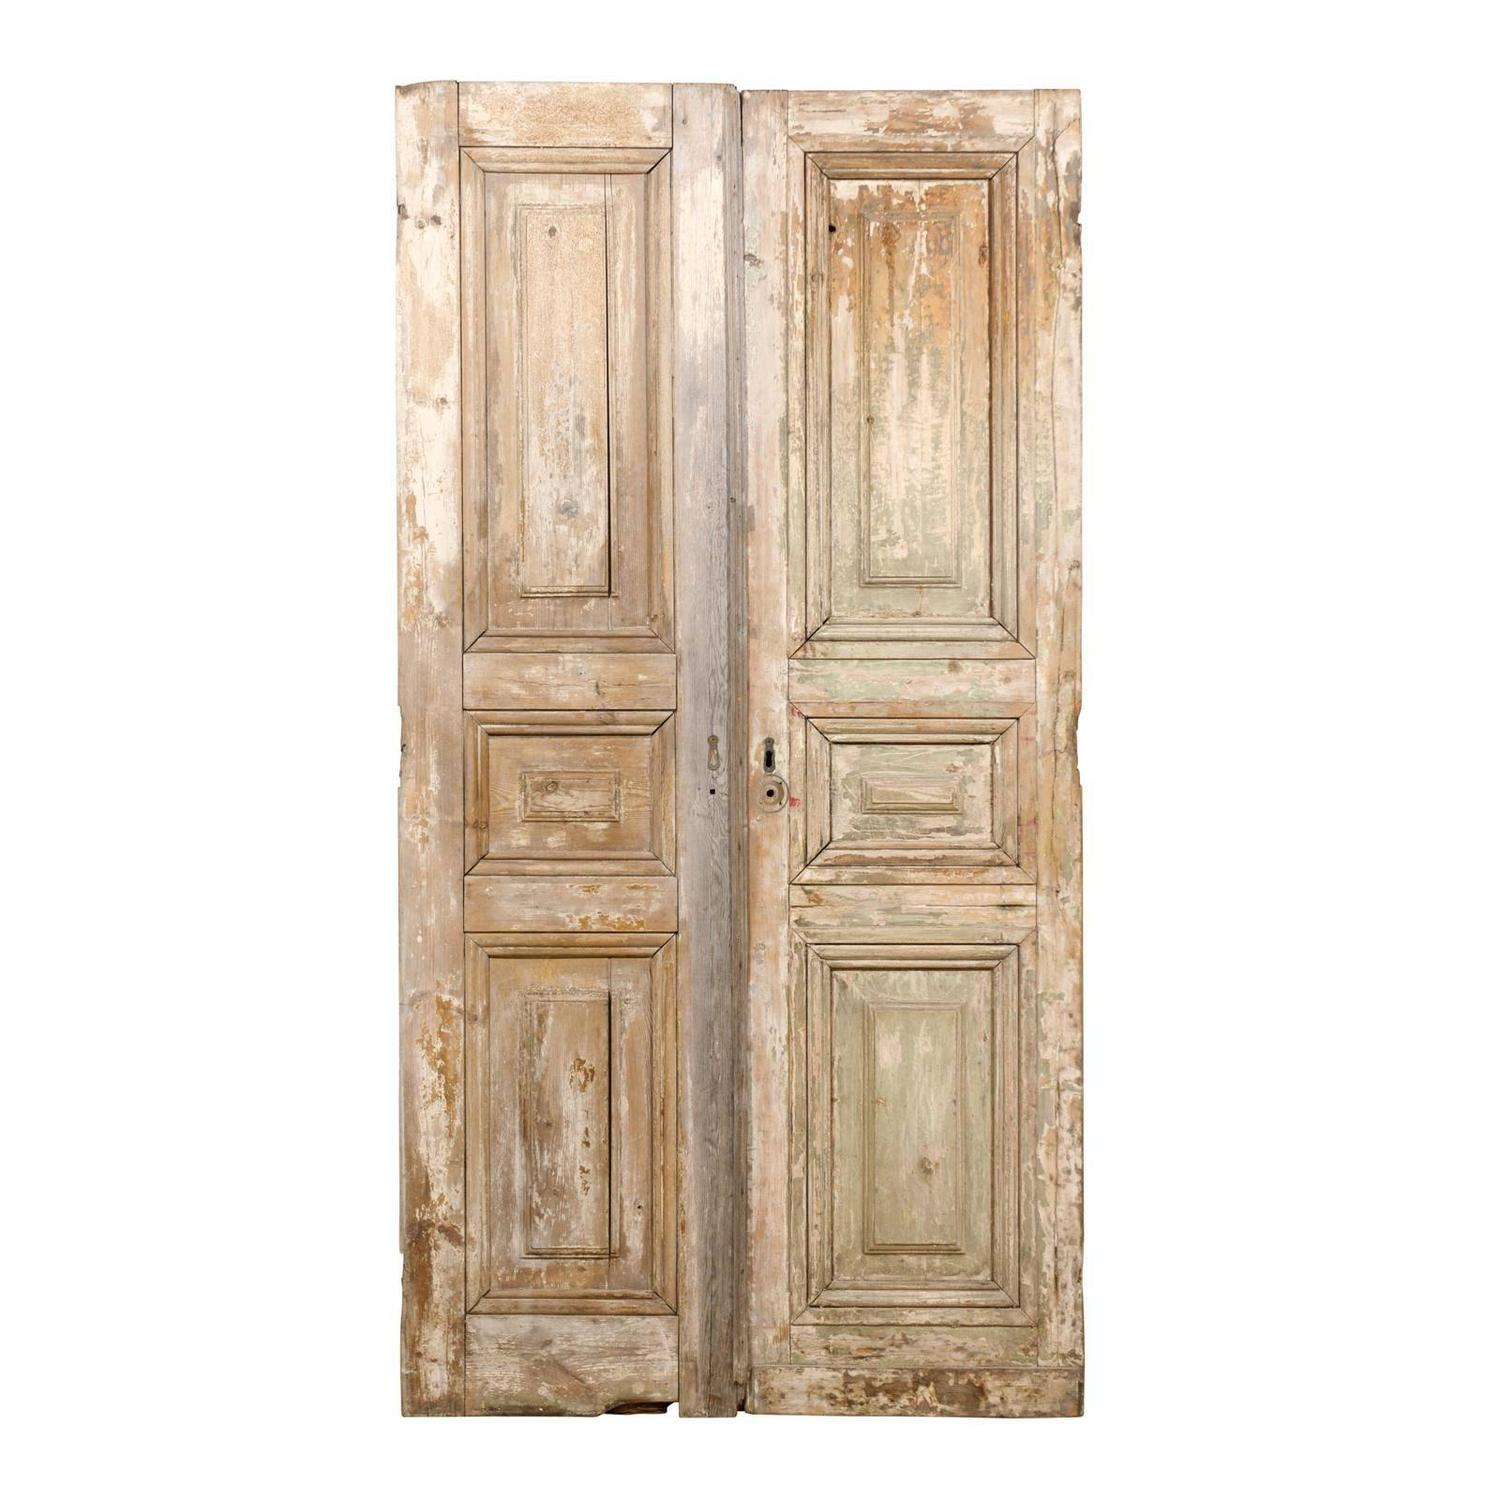 Pair of french 19th century wooden doors for sale at 1stdibs for French doors for sale